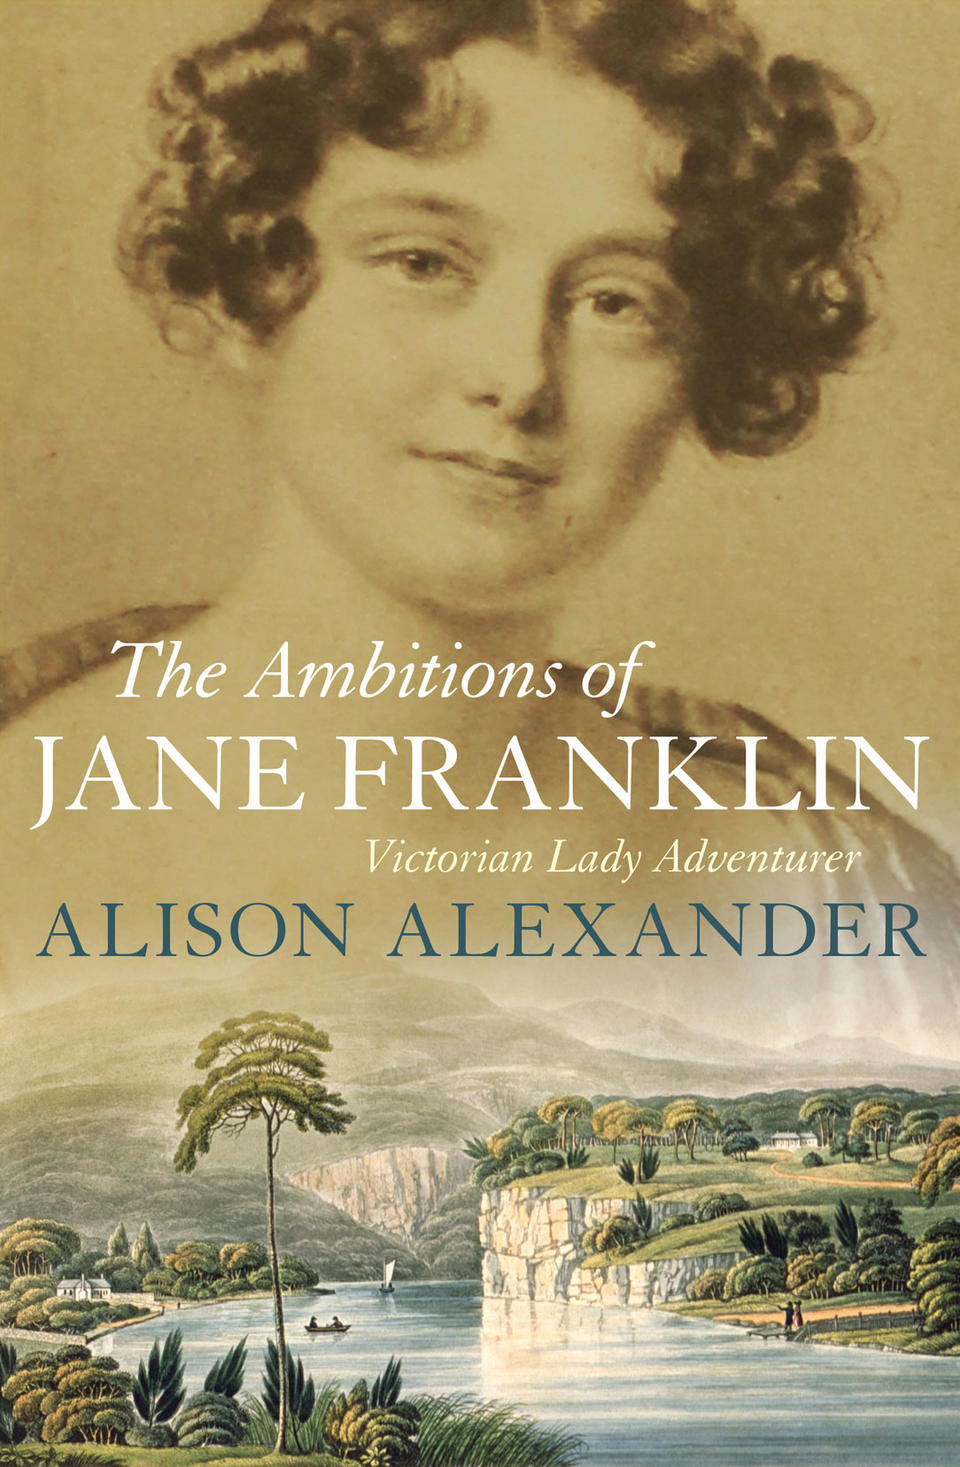 Jane Franklin and image of coastline on book cover of The Ambitions of Jane Franklin Victorian Lady Adventurer by Alison Alexander